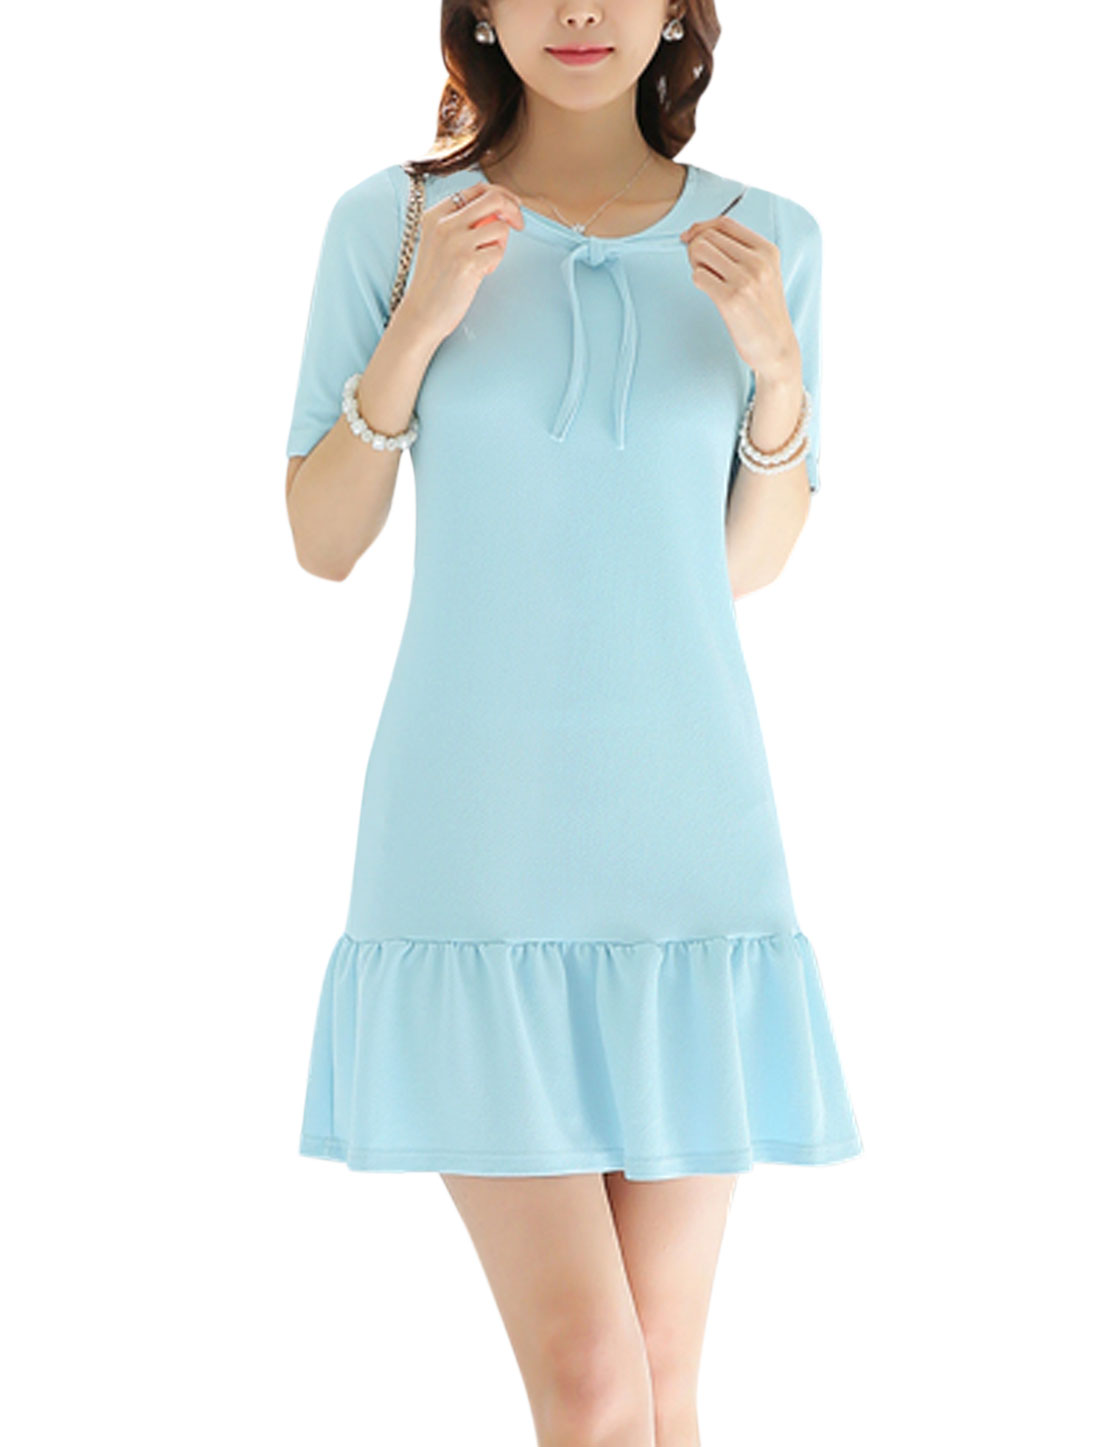 Ladies Short Sleeve Round Neck Texture Unlined Casual Dress Sky Blue M